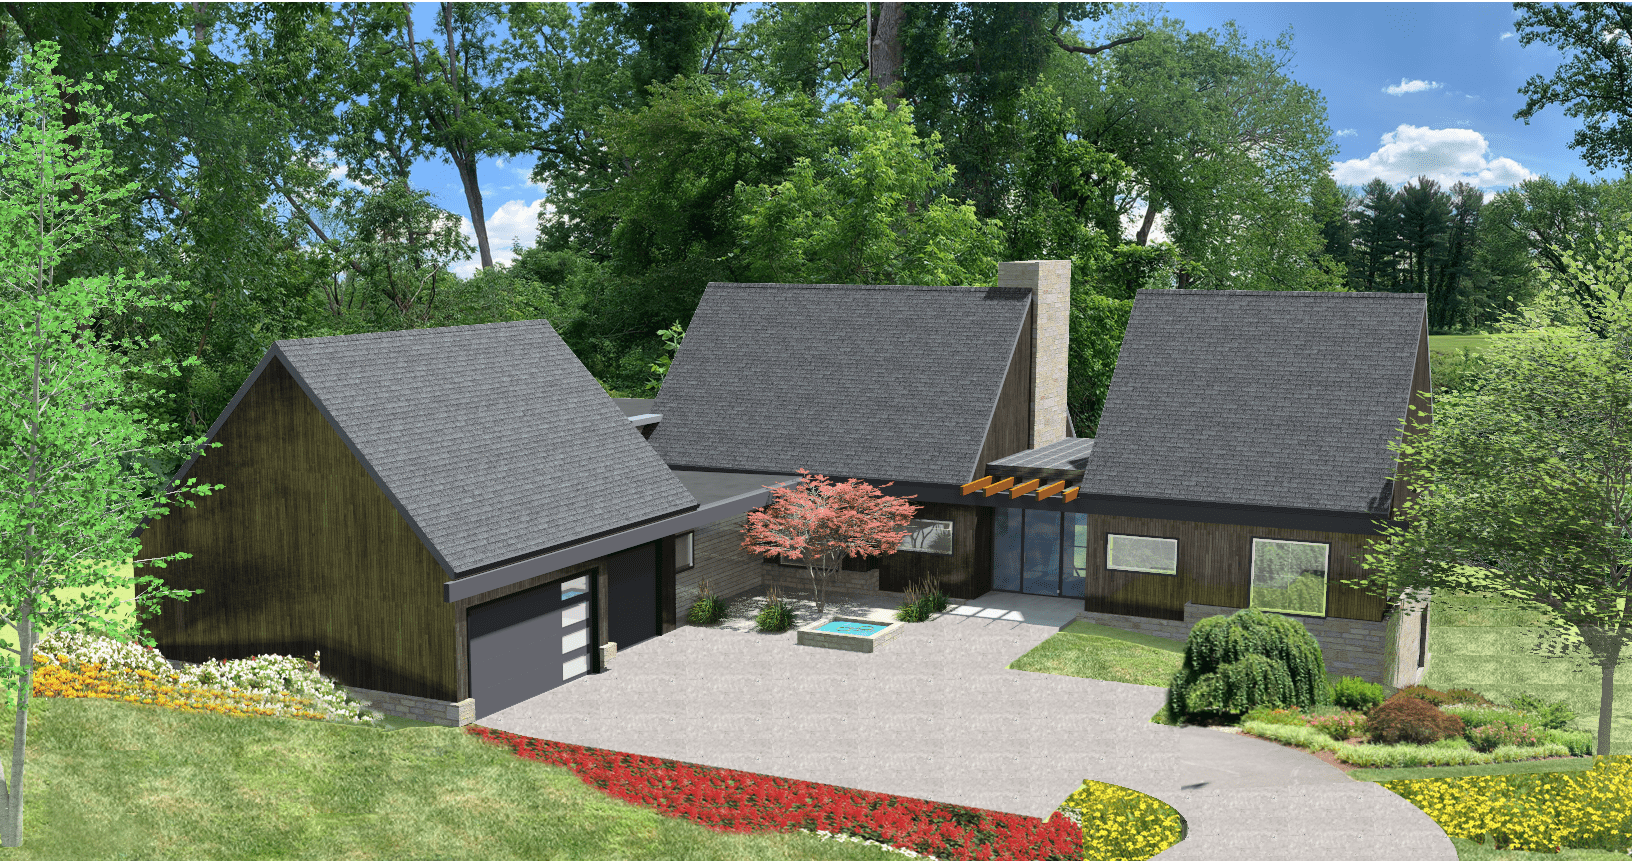 5 Wyndam Court - 3D rendering of front view